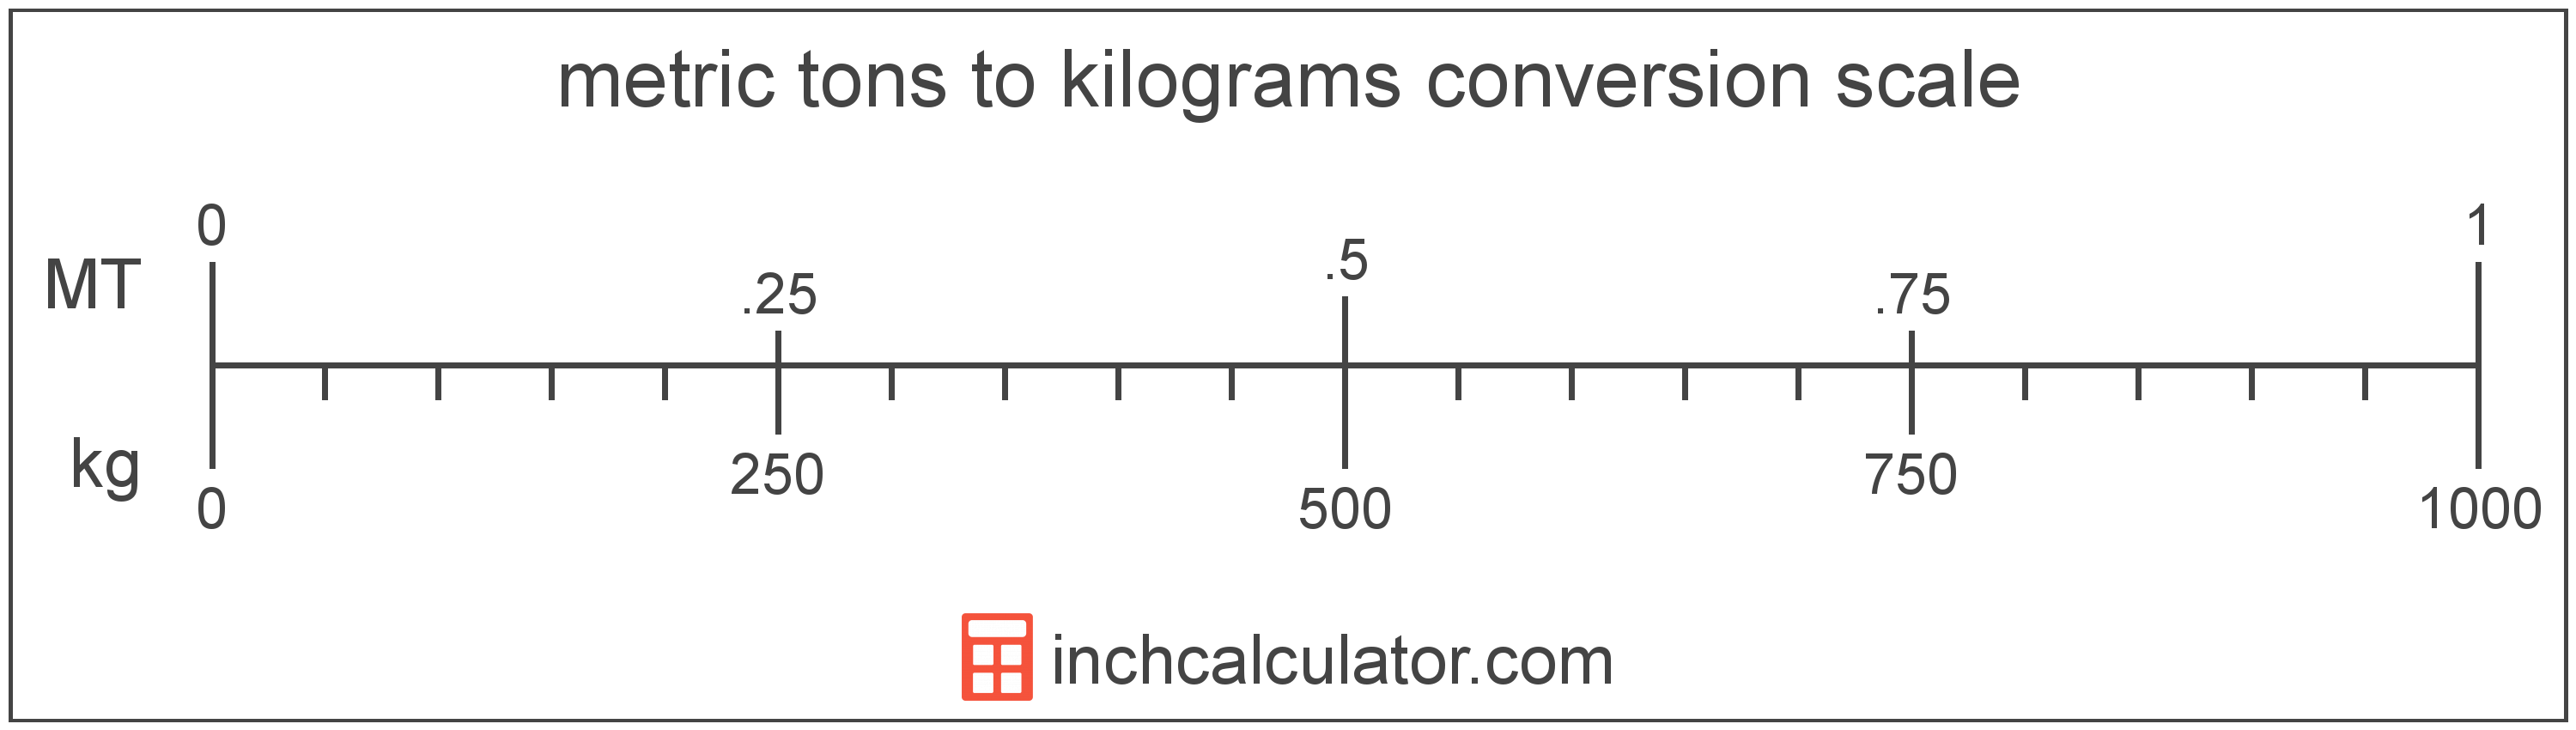 conversion scale showing metric tons and equivalent kilograms weight values